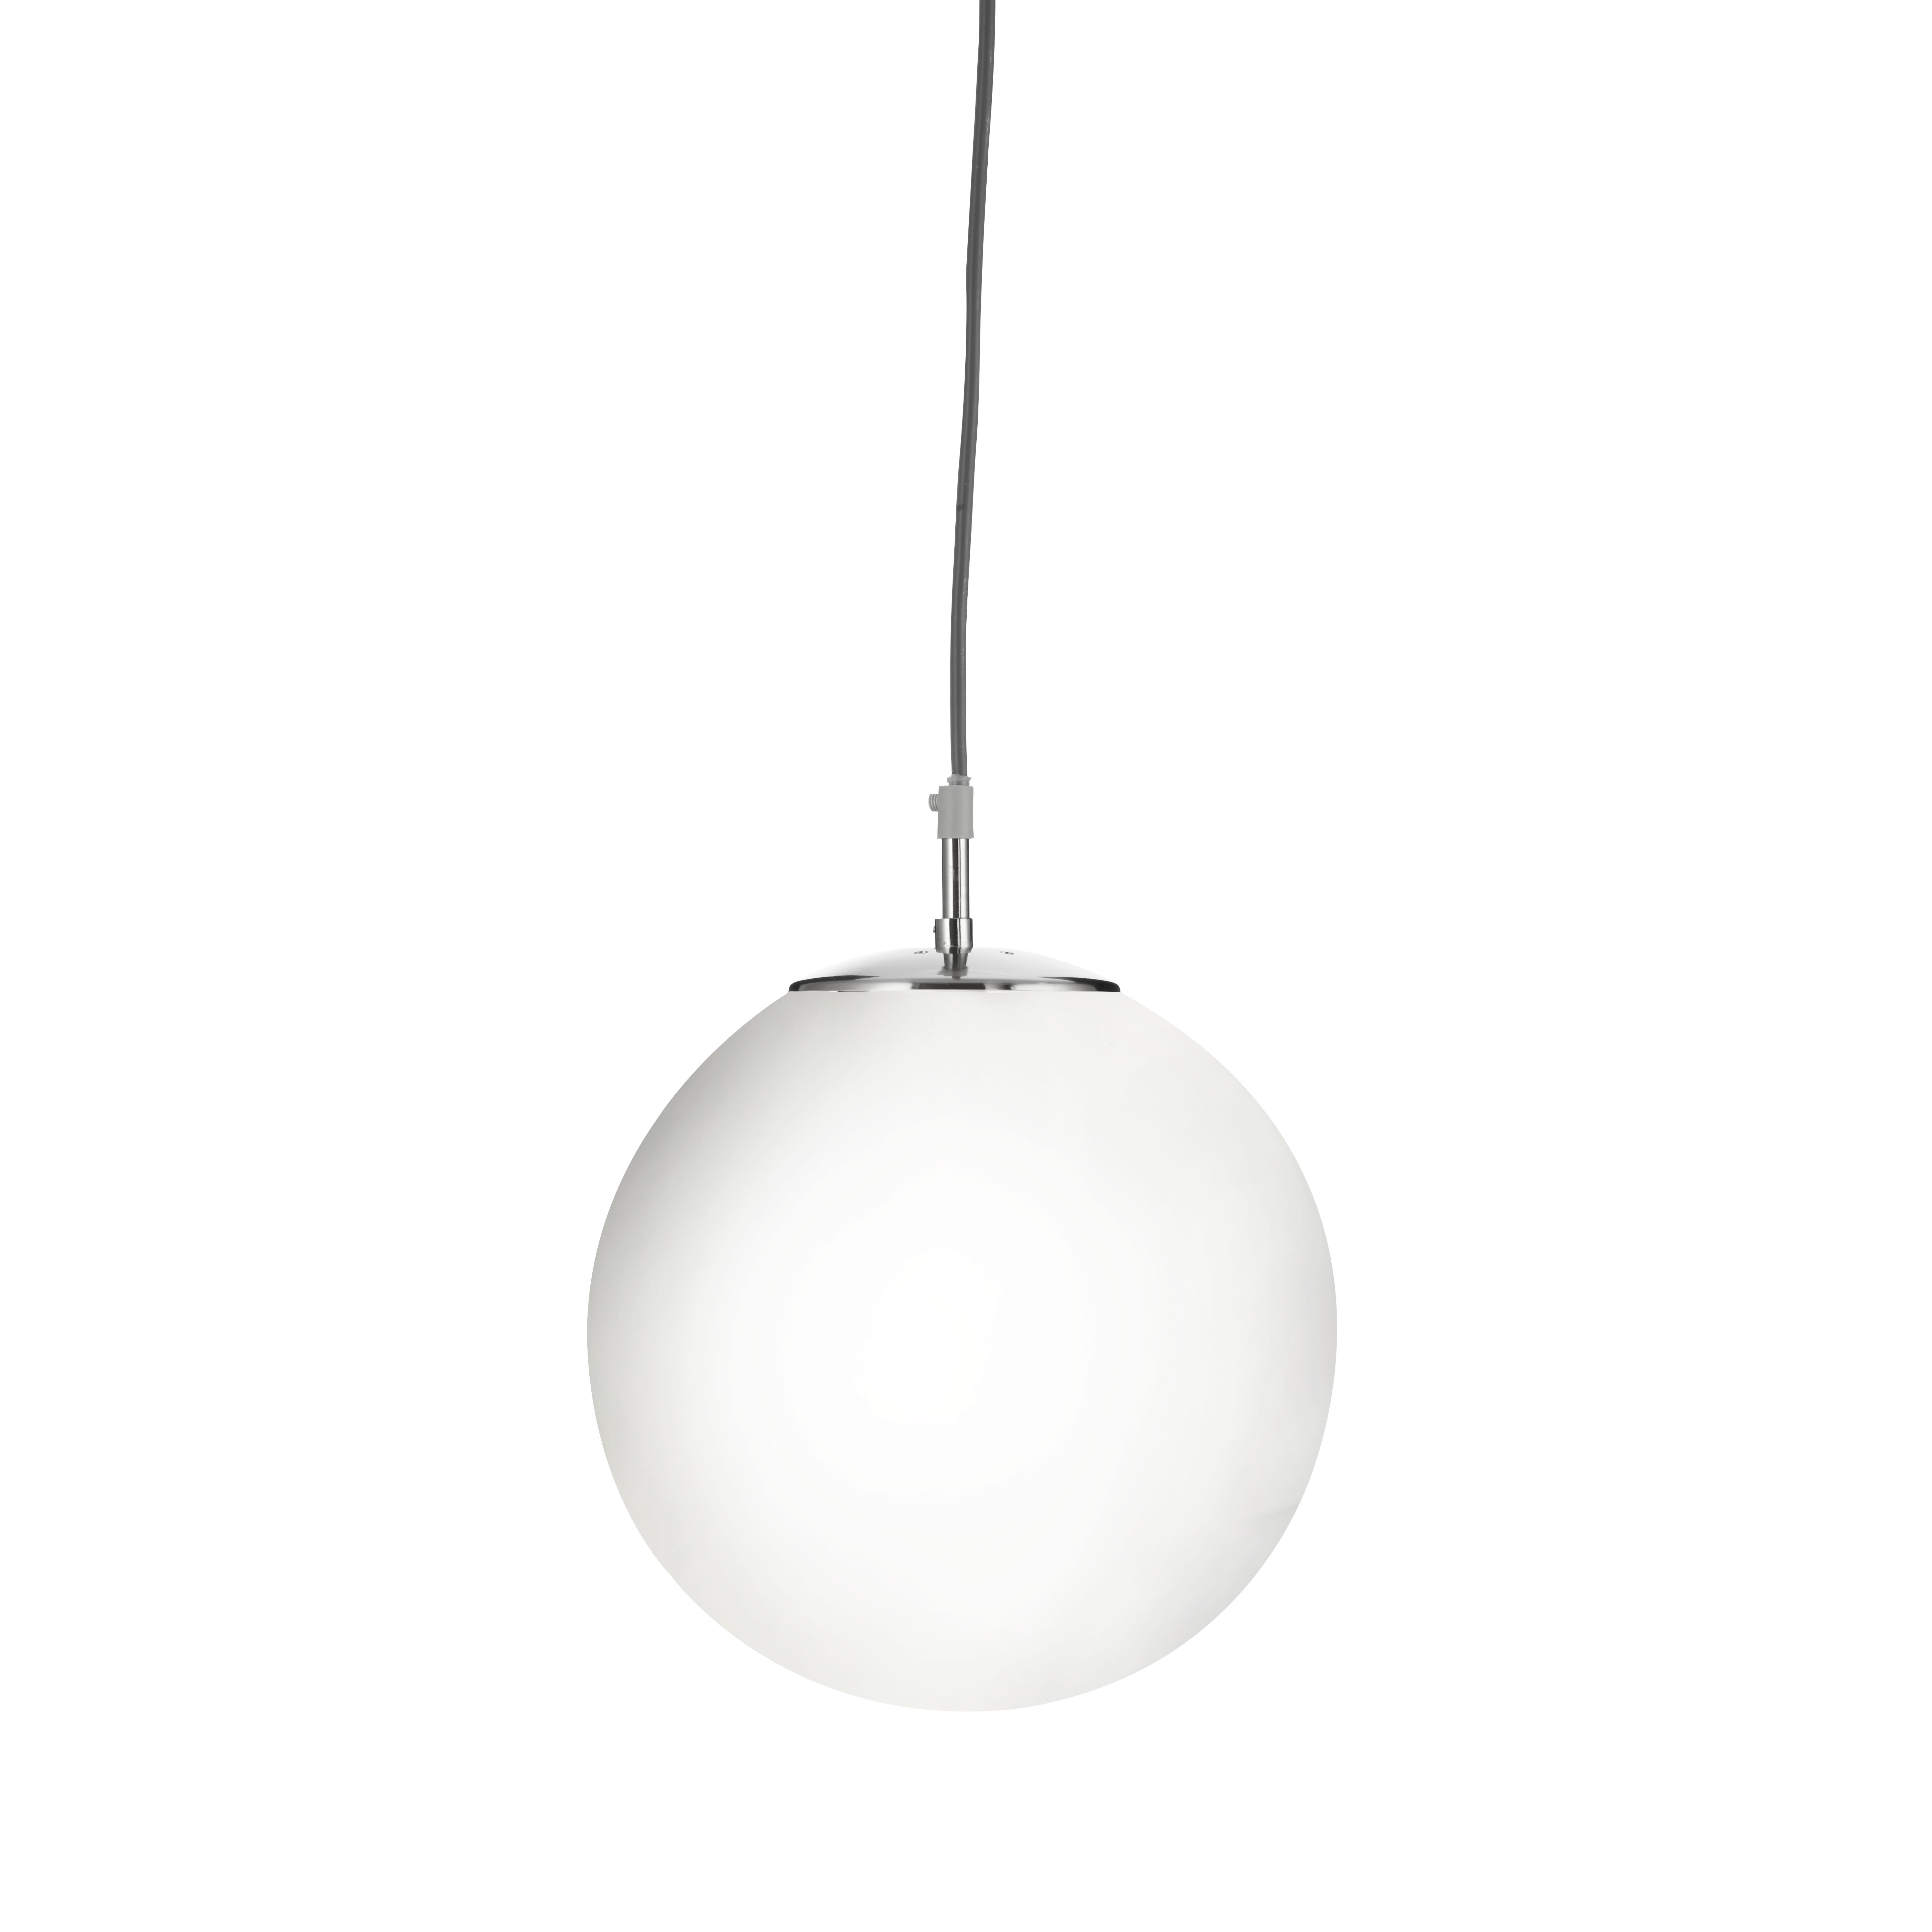 Image of: Atom Satin Silver Pendant Light Withopal Glass Sphere